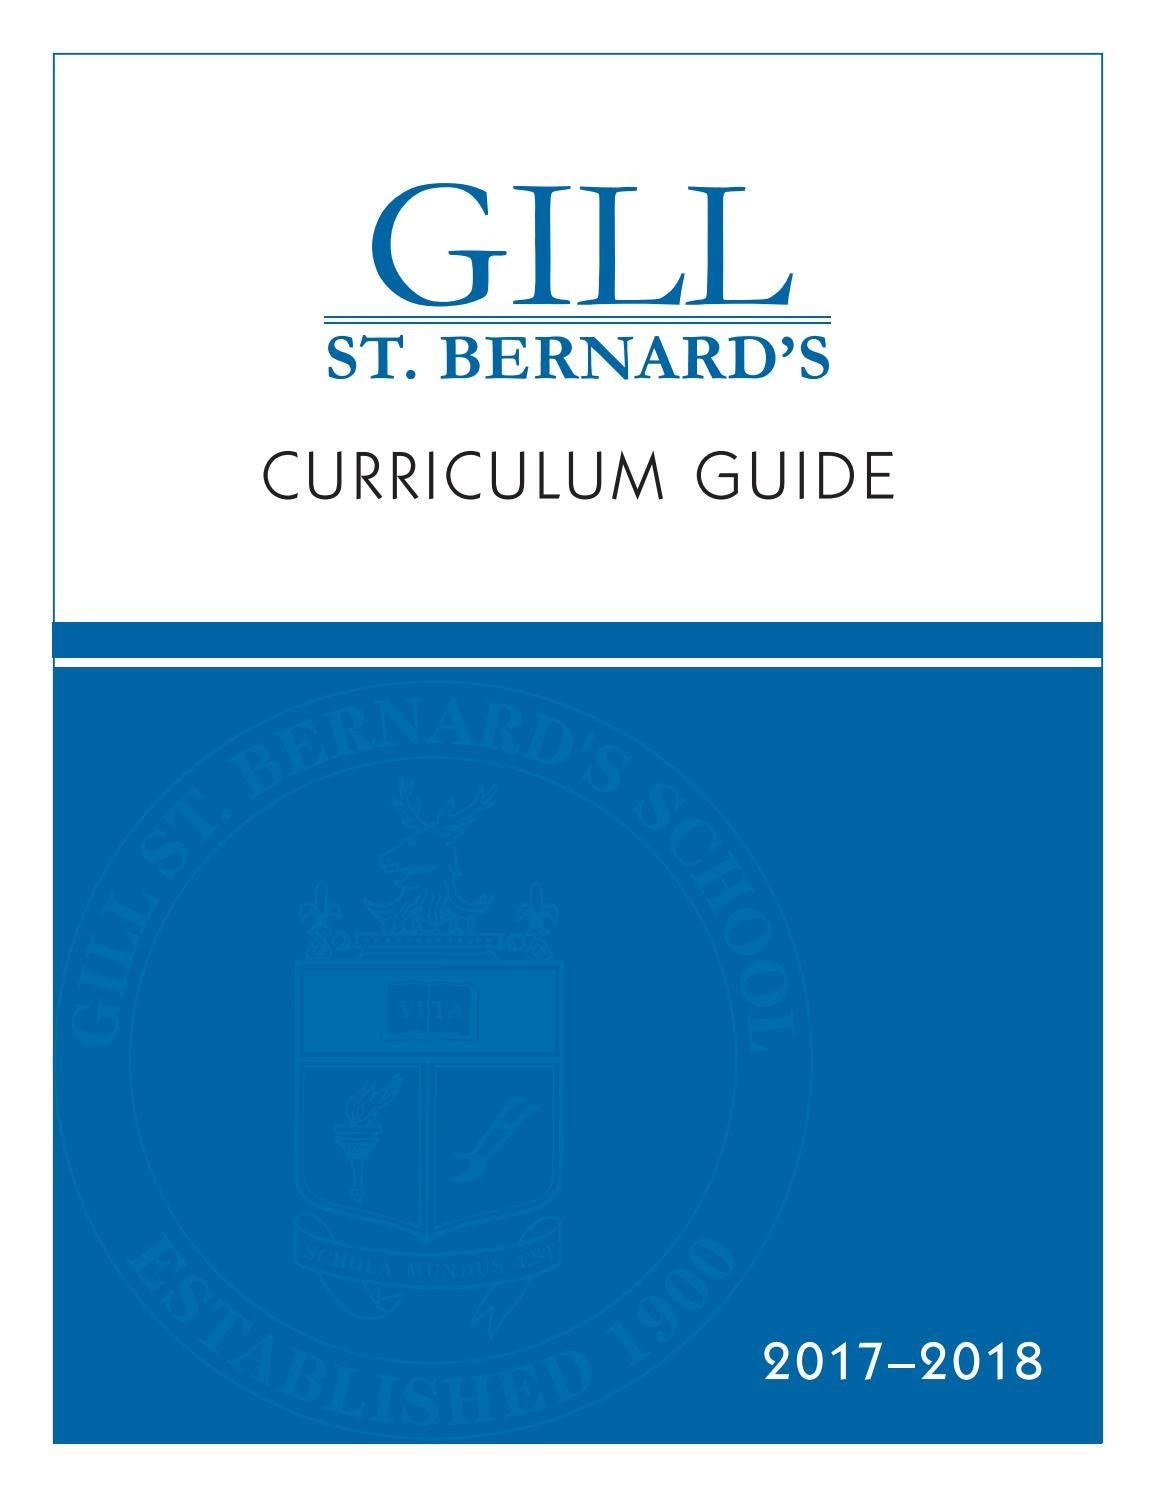 GSB Curriculum Guide by Gill St  Bernard's School - issuu